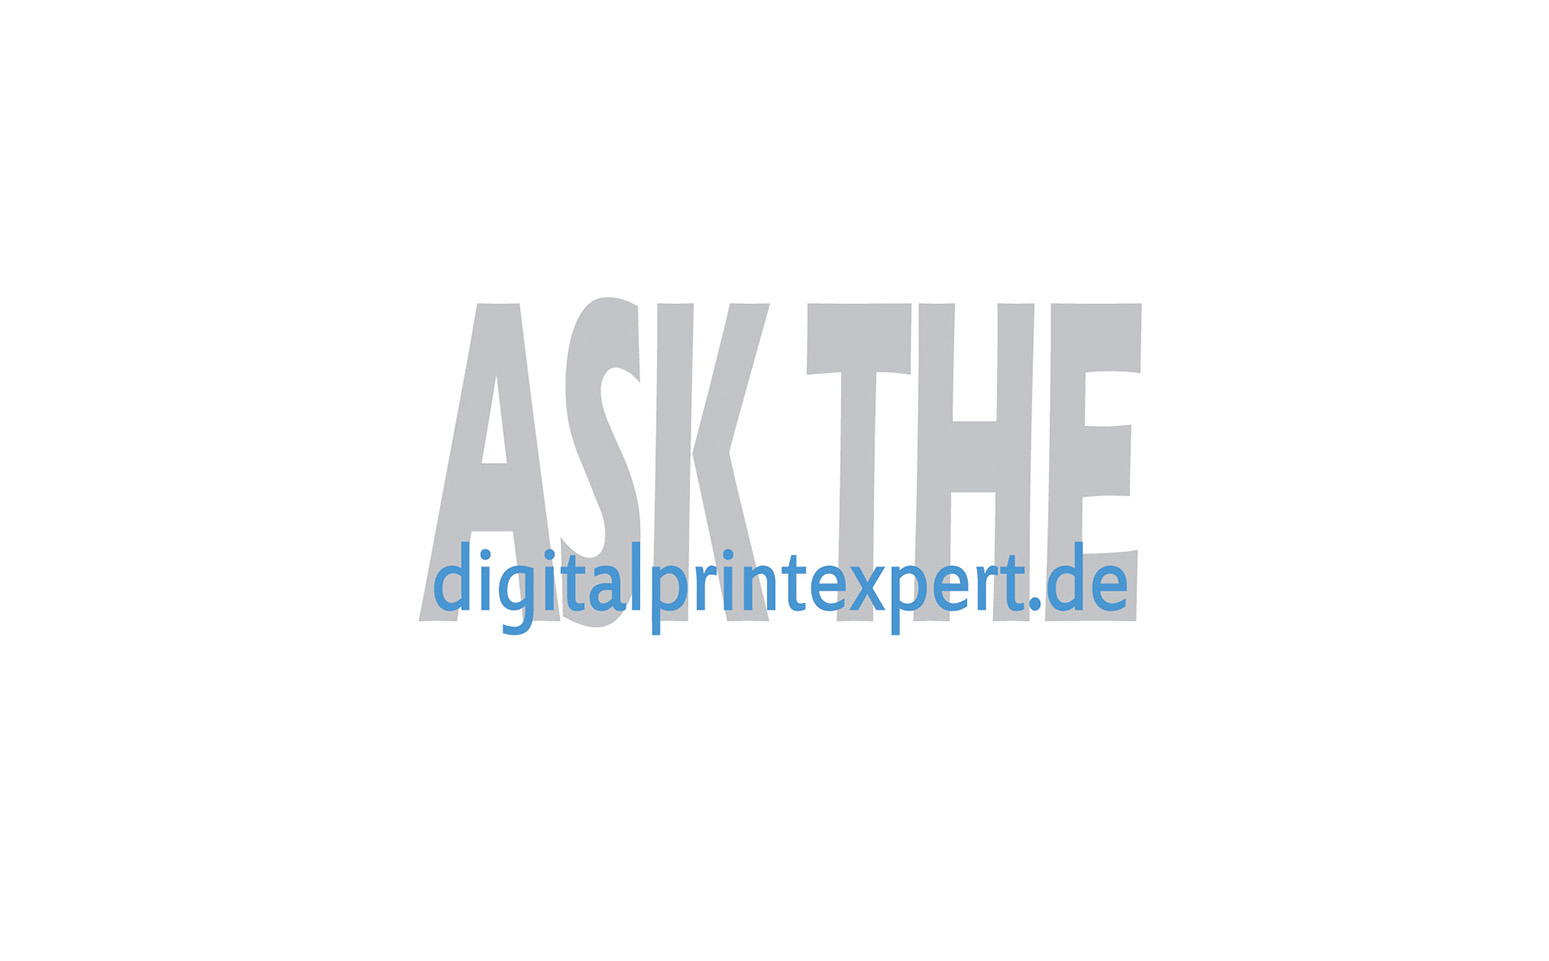 Ask the digitalprintexpert.de